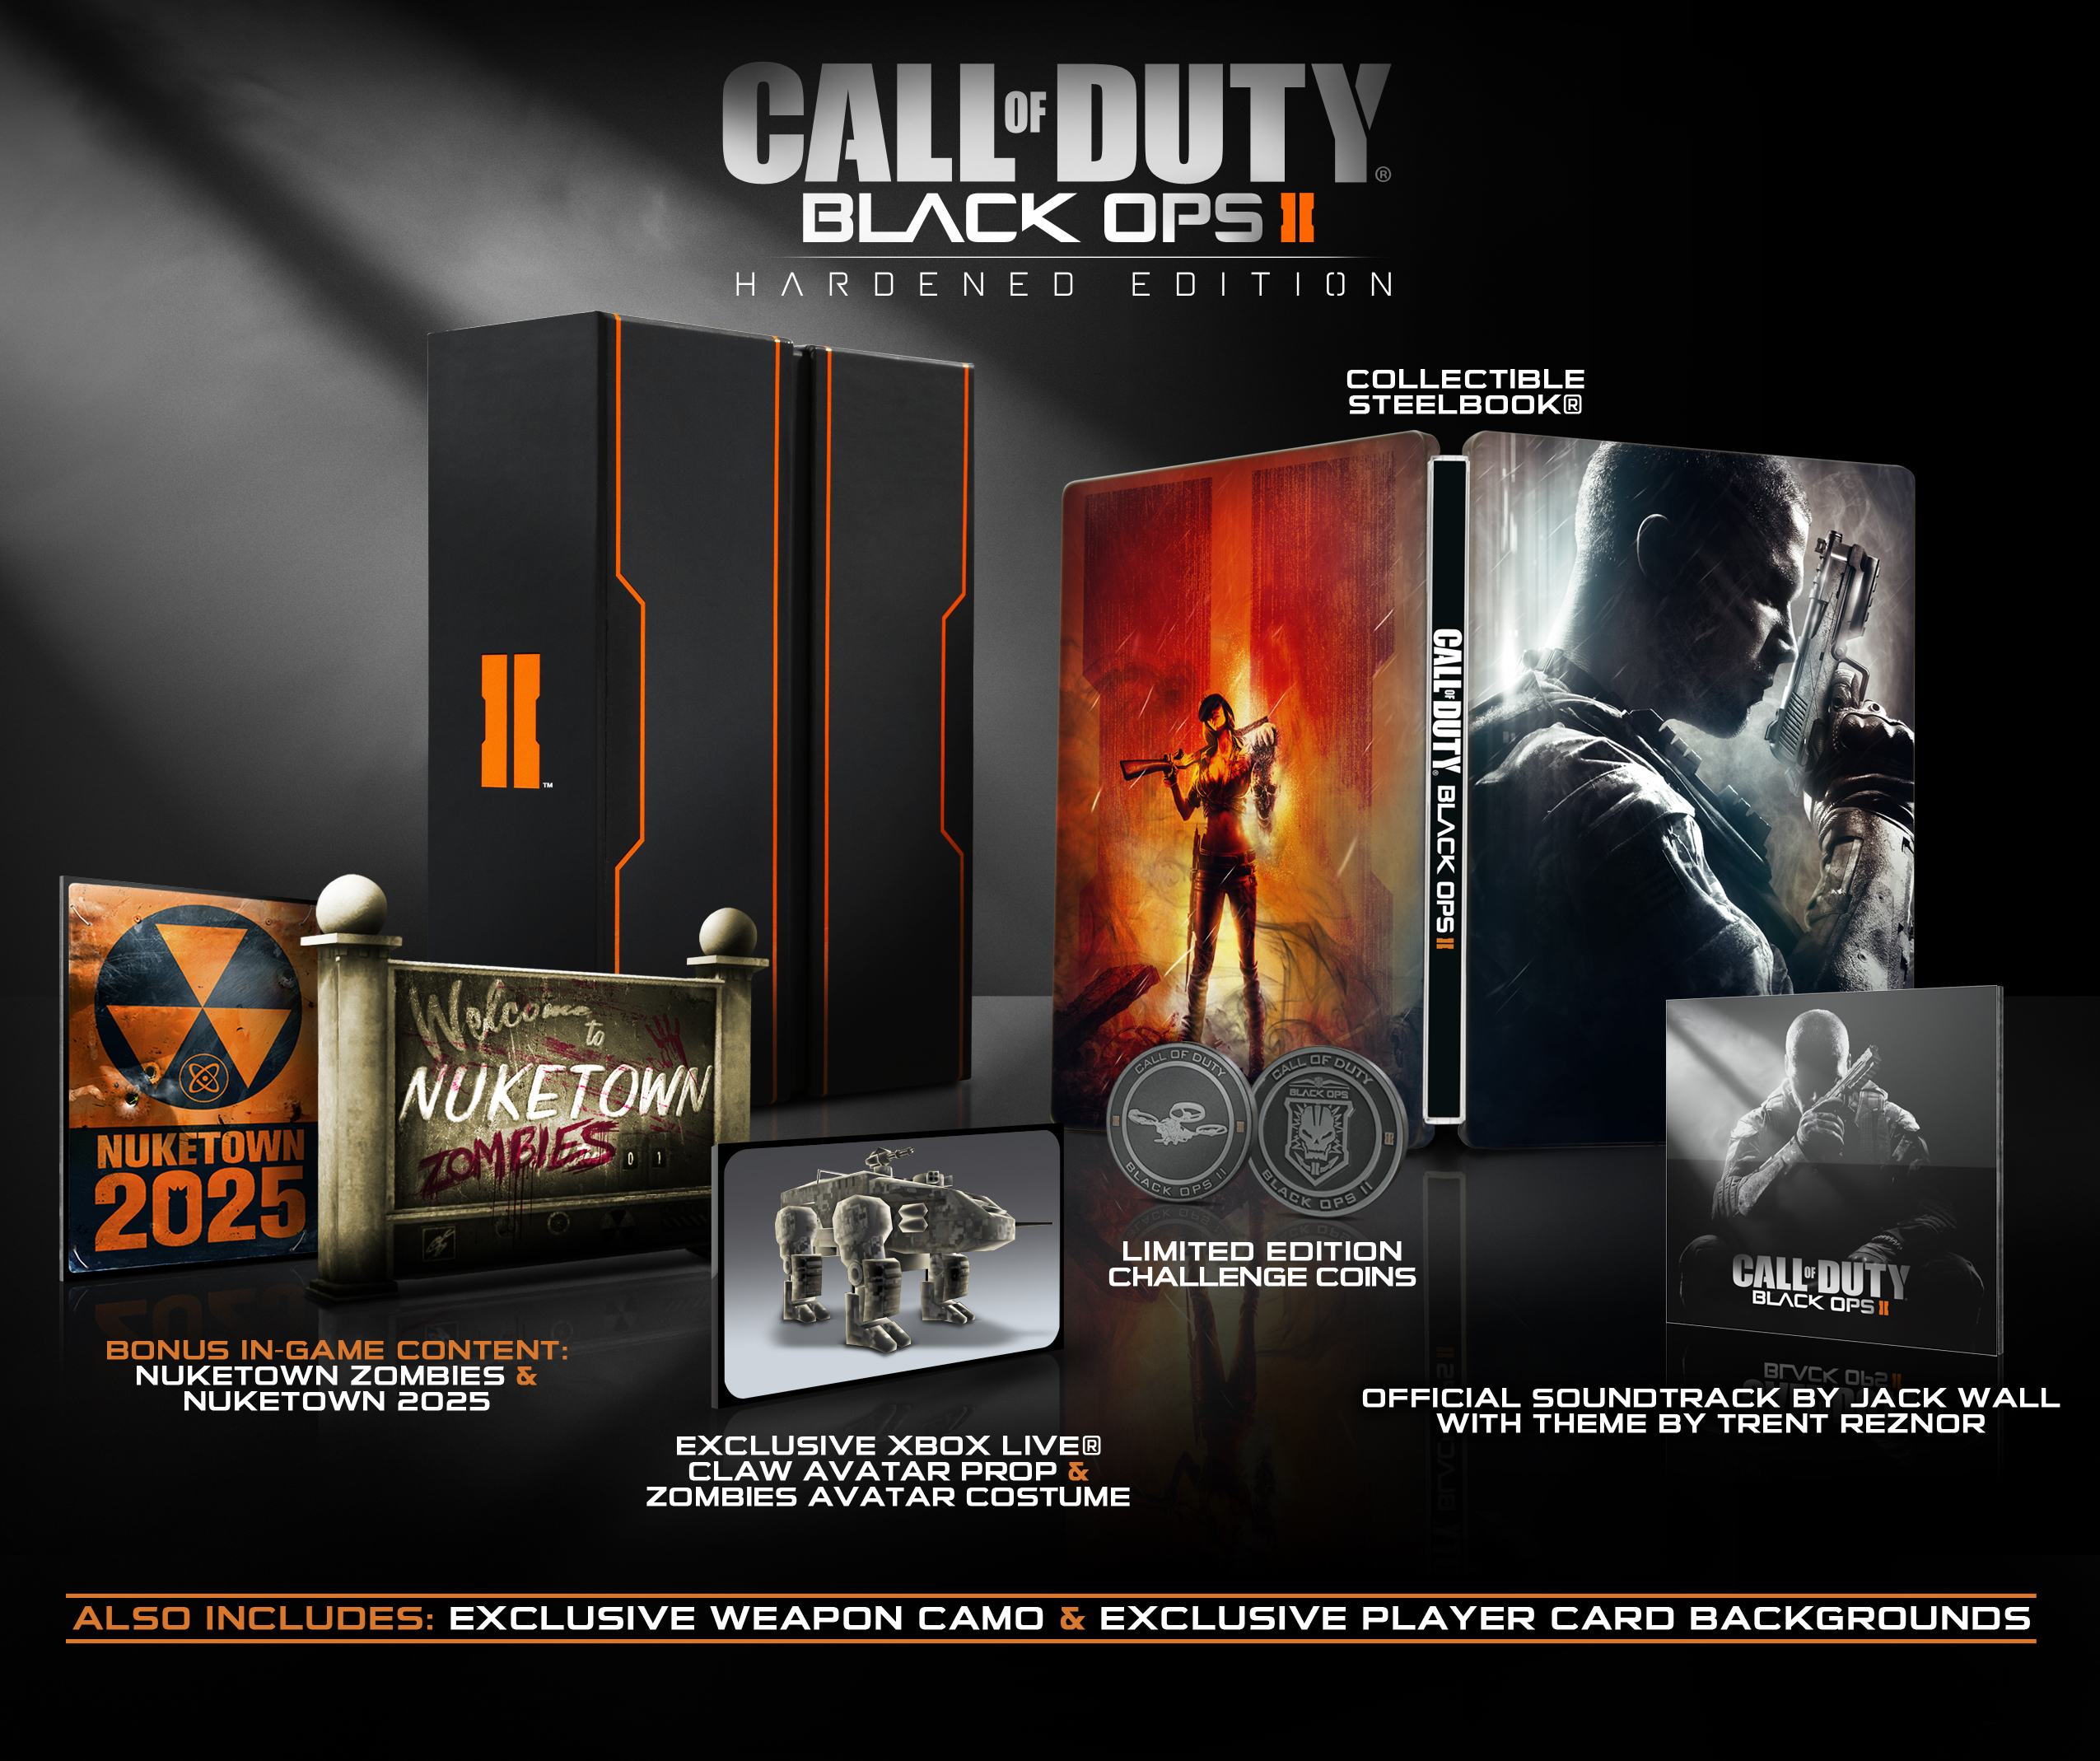 Call of Duty Black Ops II_Hardened Edition_X360